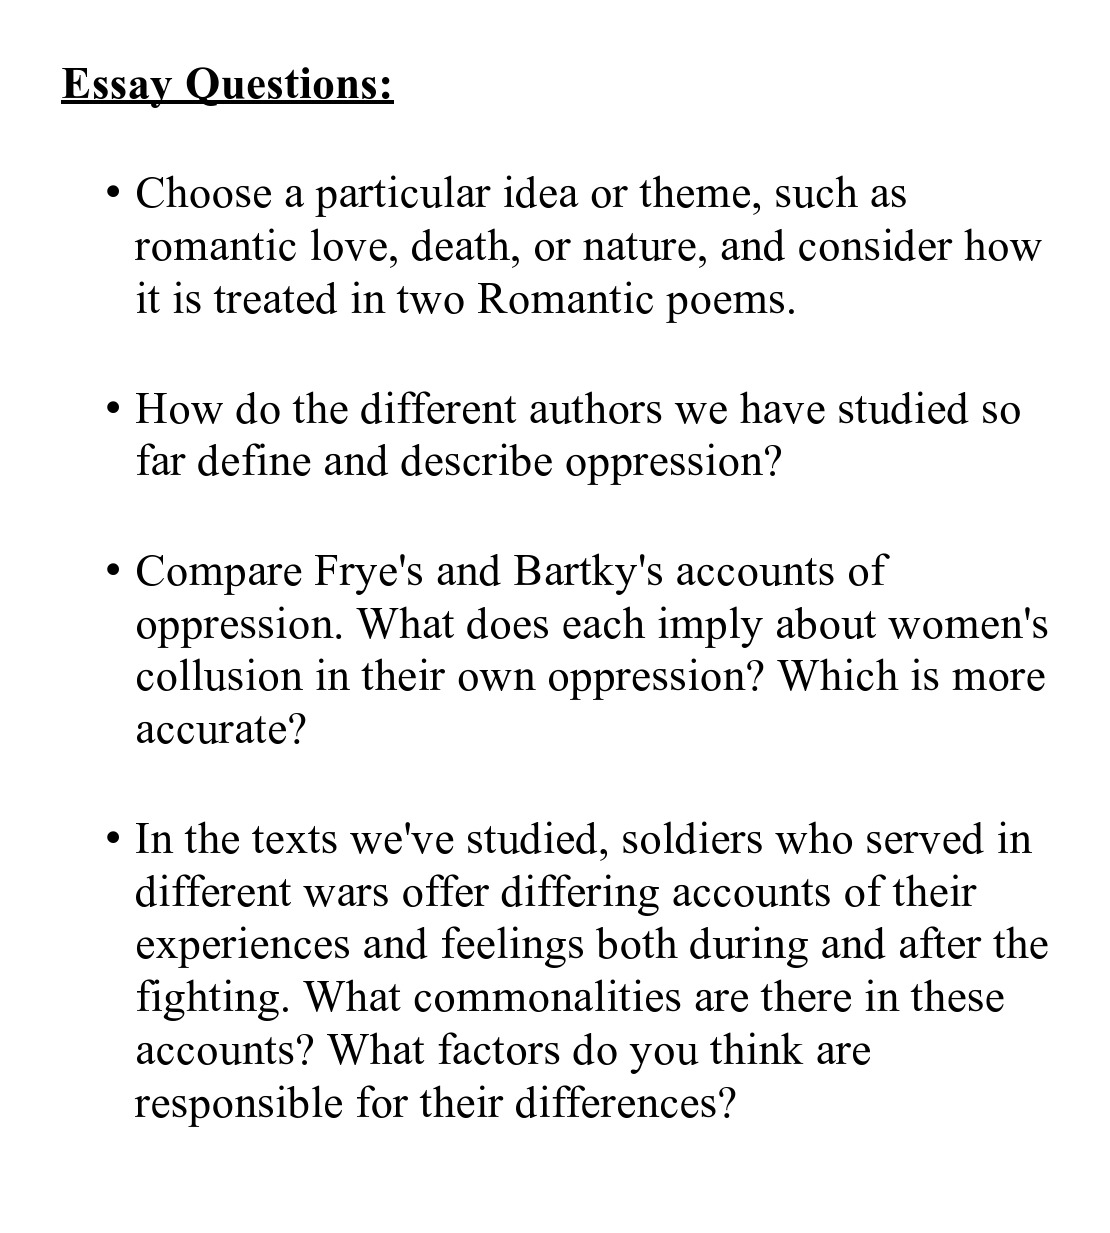 003 Essay Questions Example Dreaded Topics Writing For College Students Secondary School Ideas Full